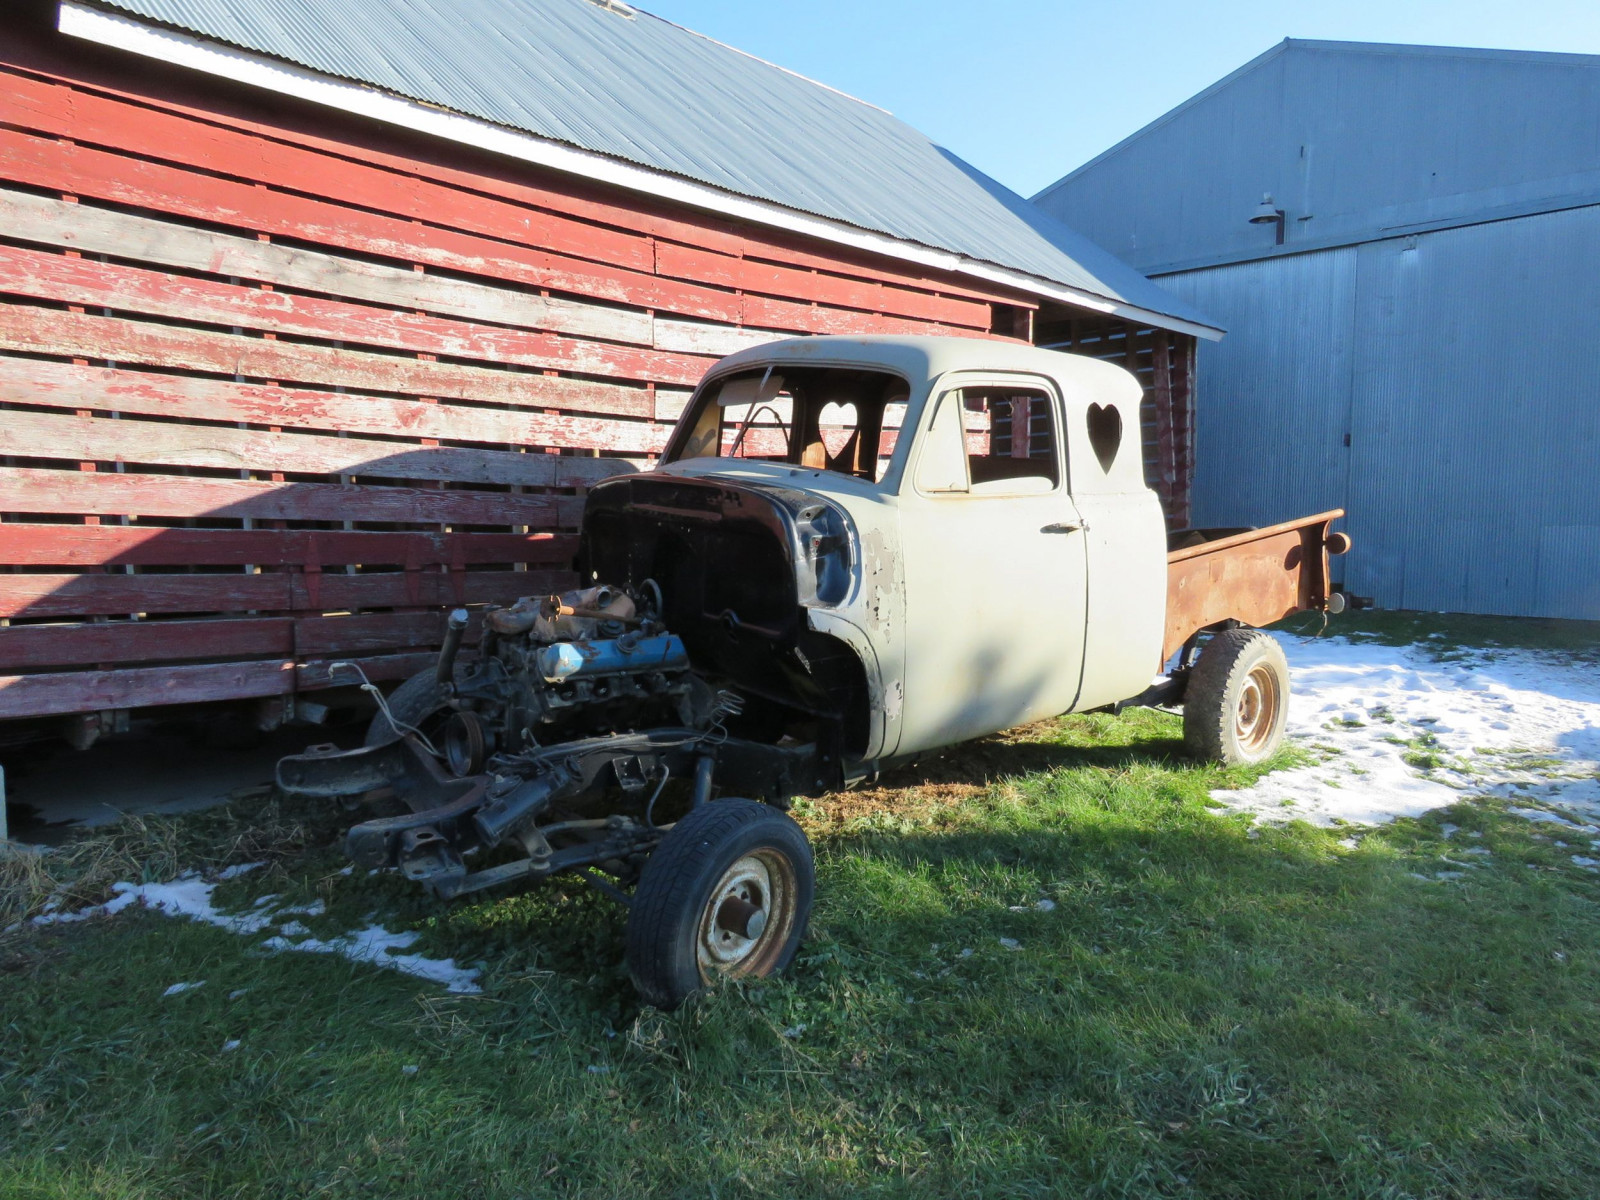 1949 Chevrolet 5 Window Cab Pickup Project - Image 1